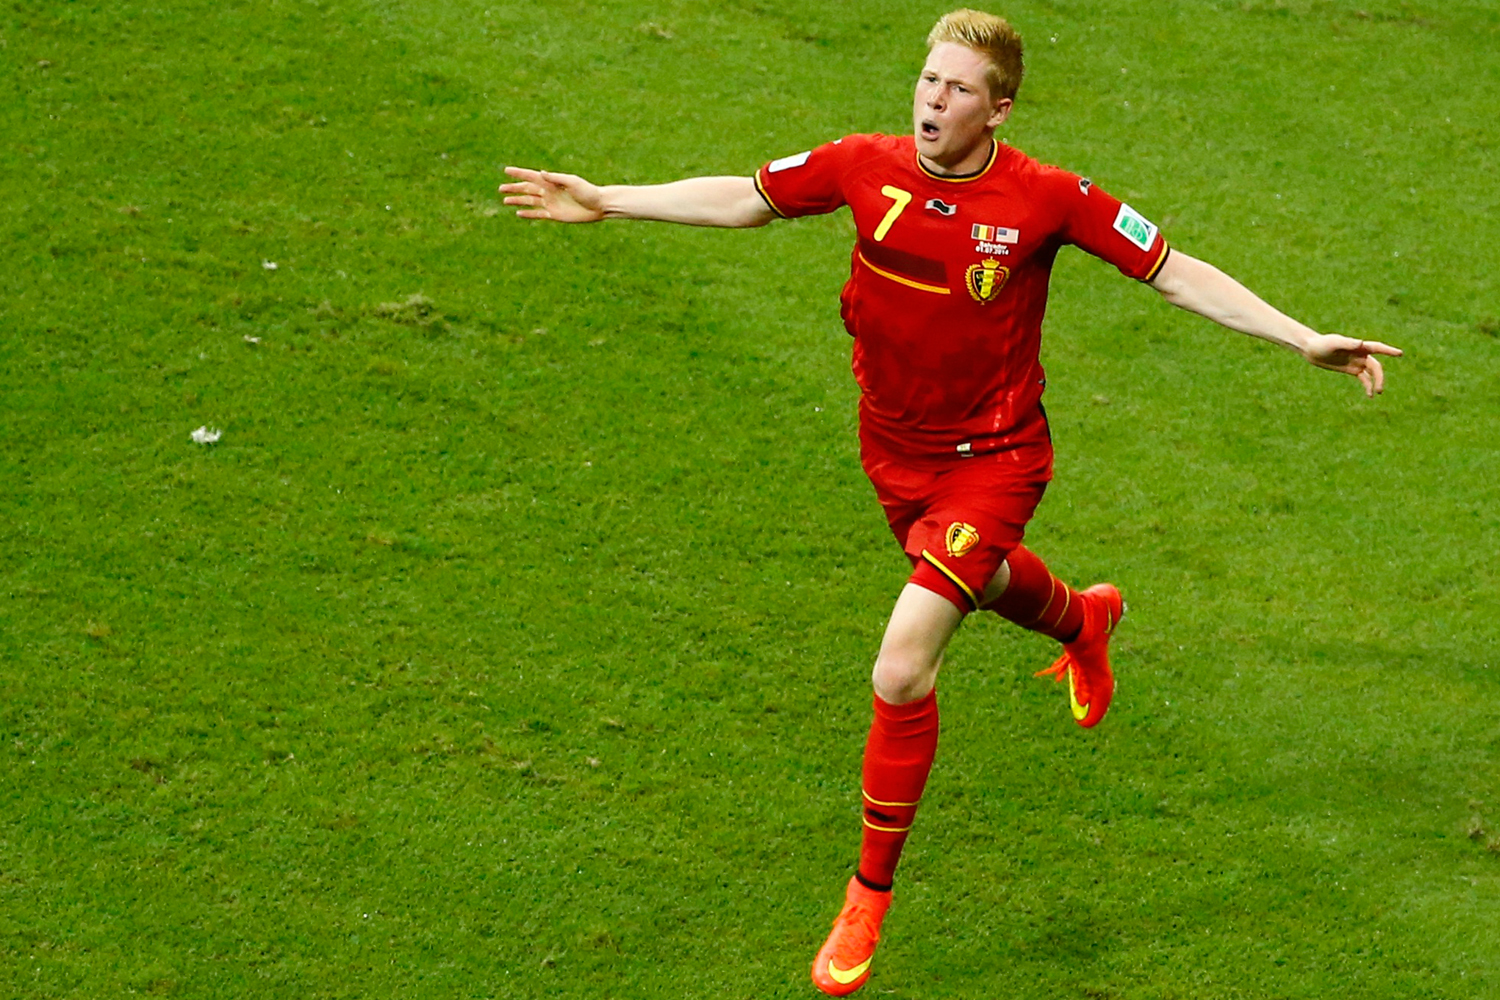 Belgium's Kevin De Bruyne celebrates scoring a goal against the U.S. during extra time in their 2014 World Cup round of 16 game at the Fonte Nova arena, July 1, 2014.